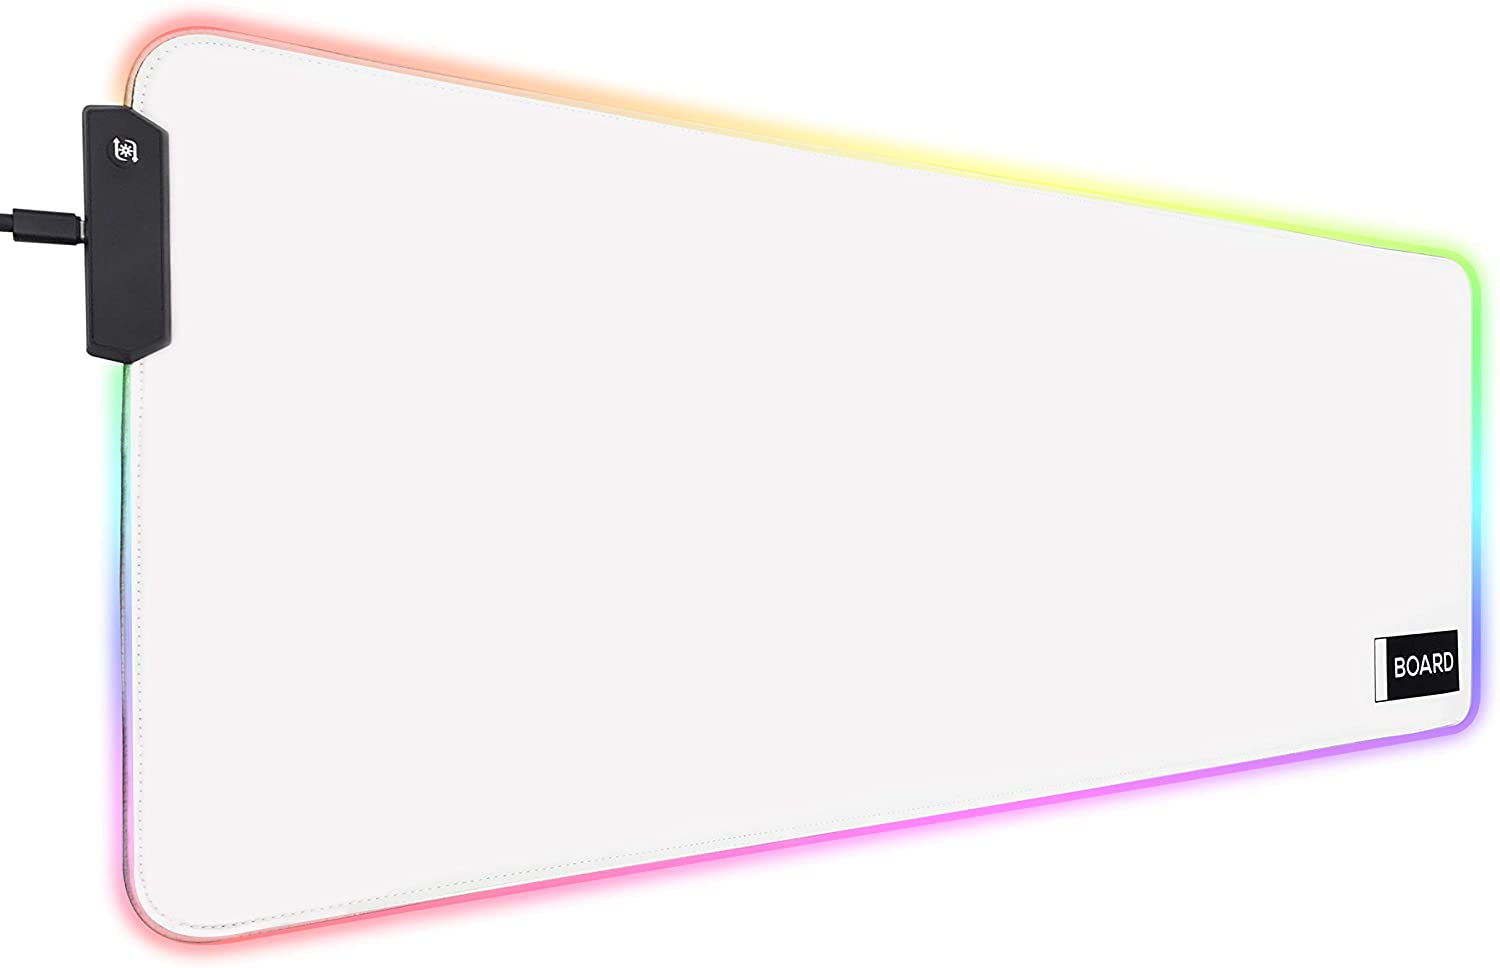 2021 autumn and winter new Board Extended White RGB Gaming San Diego Mall Mouse Mat 10 XXL: Lighting Pad